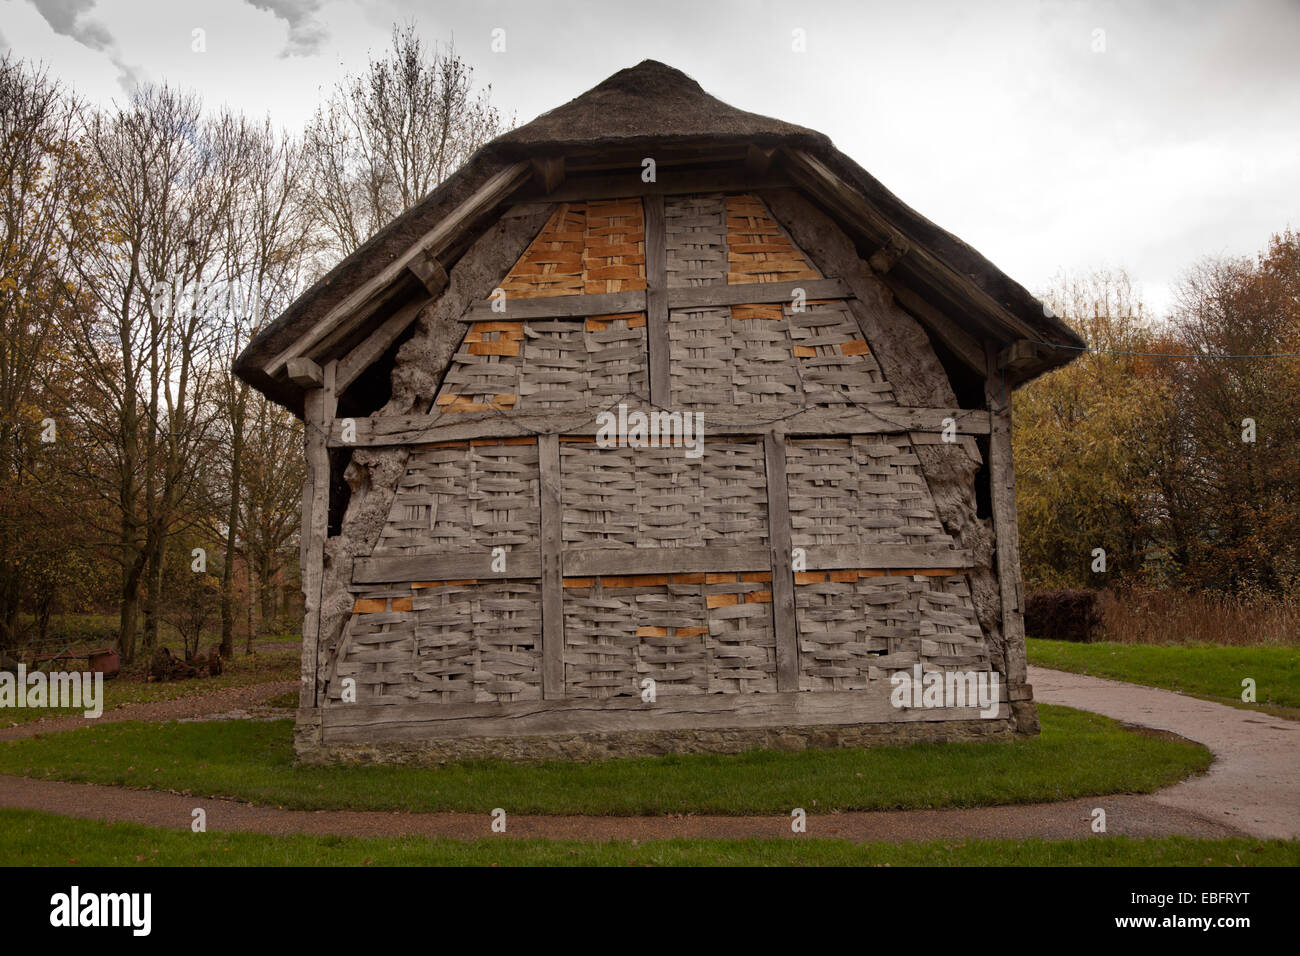 Thatched barn in Avoncroft Museum of Buildings, Worcs UK - Stock Image